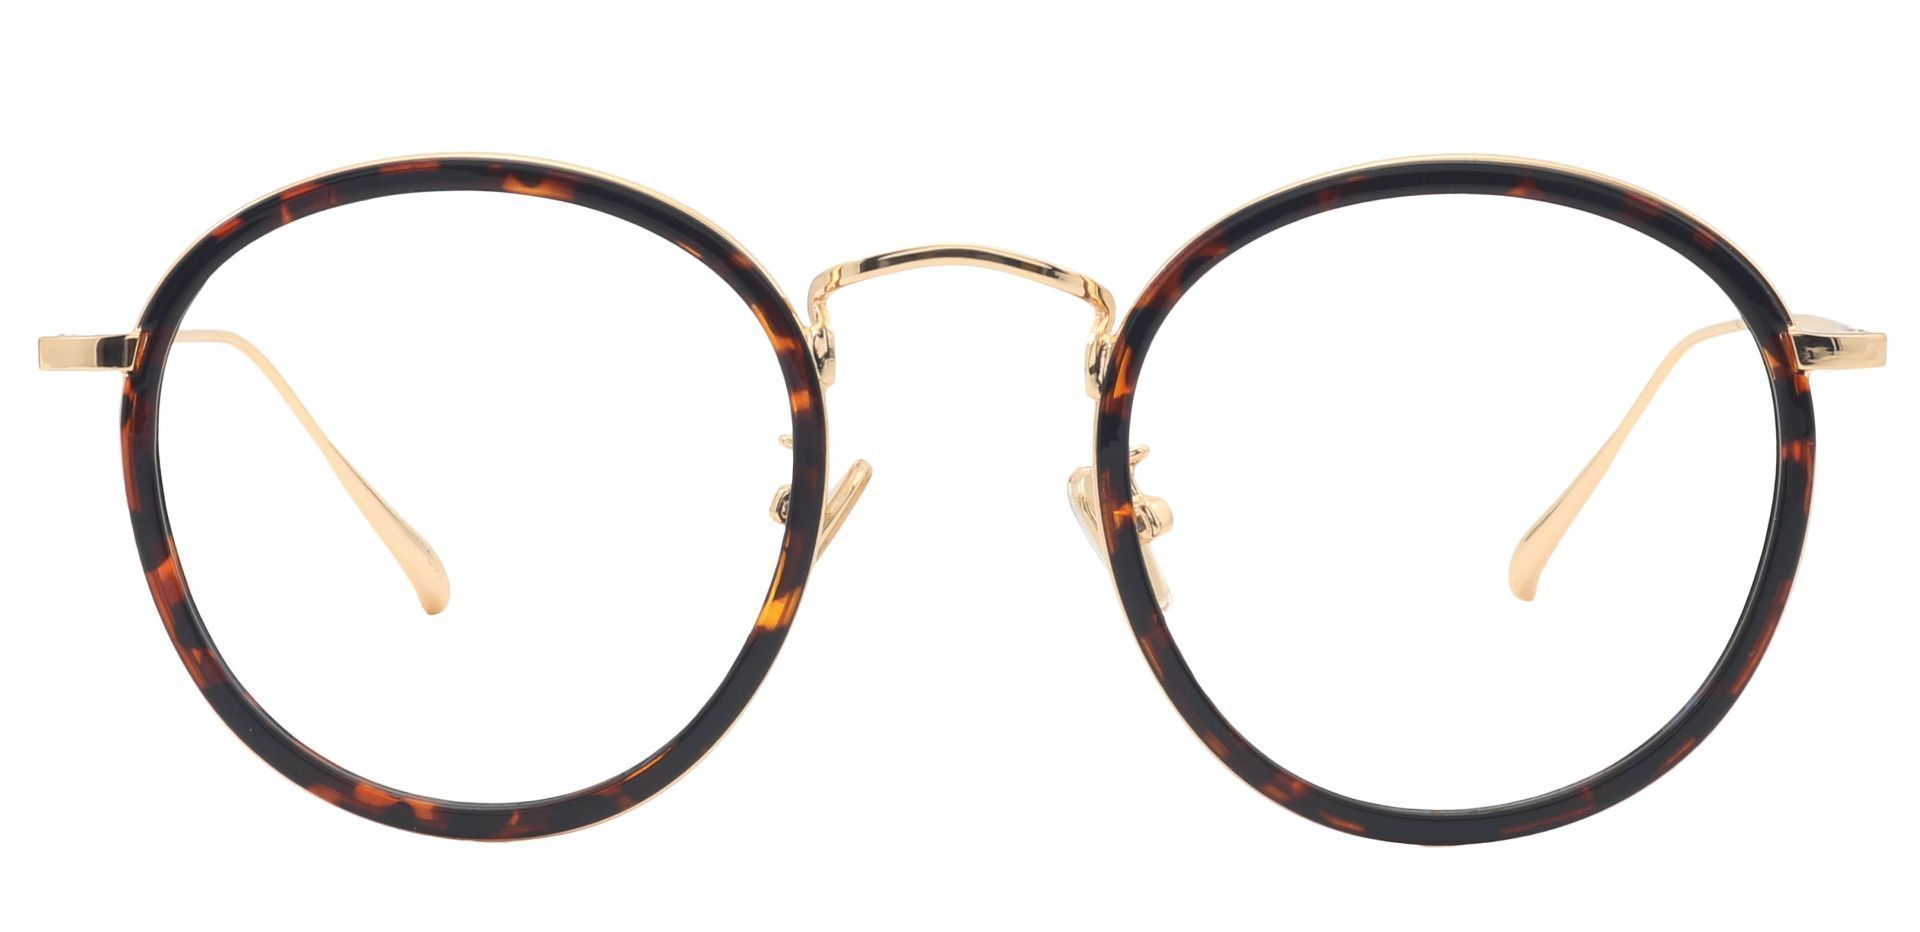 Croatia Round Blue Light Blocking Glasses - Leopard